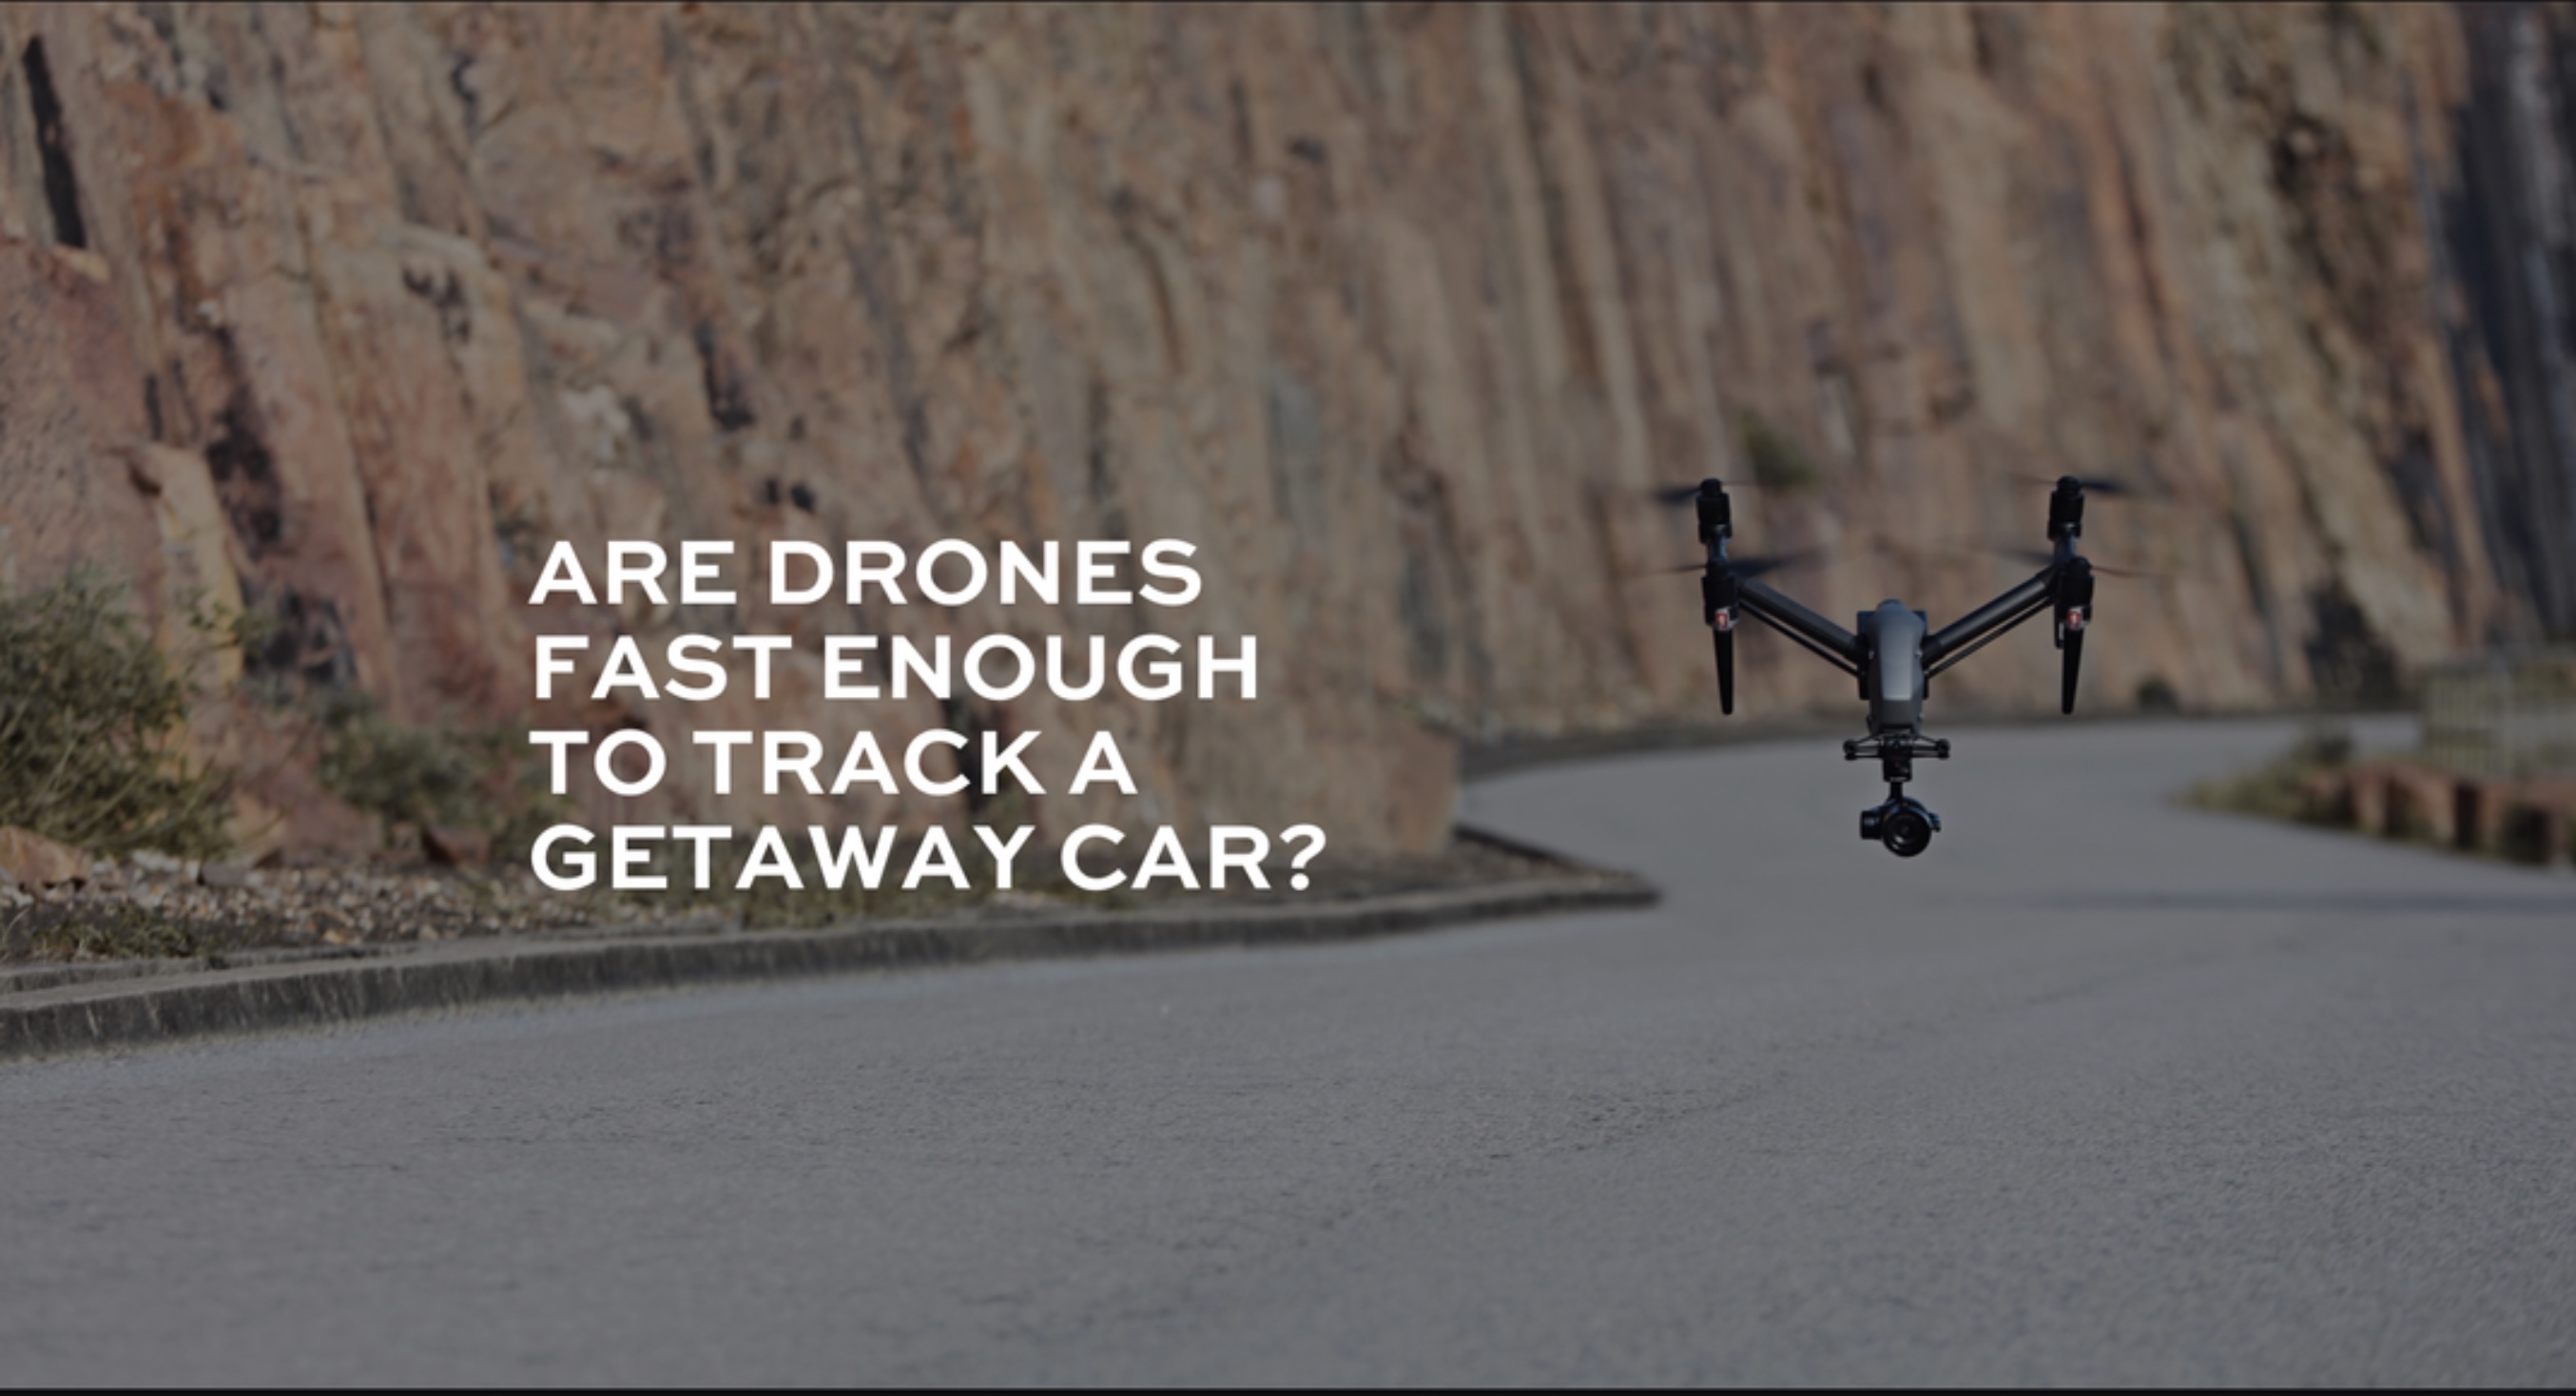 Speed of drones in car chase